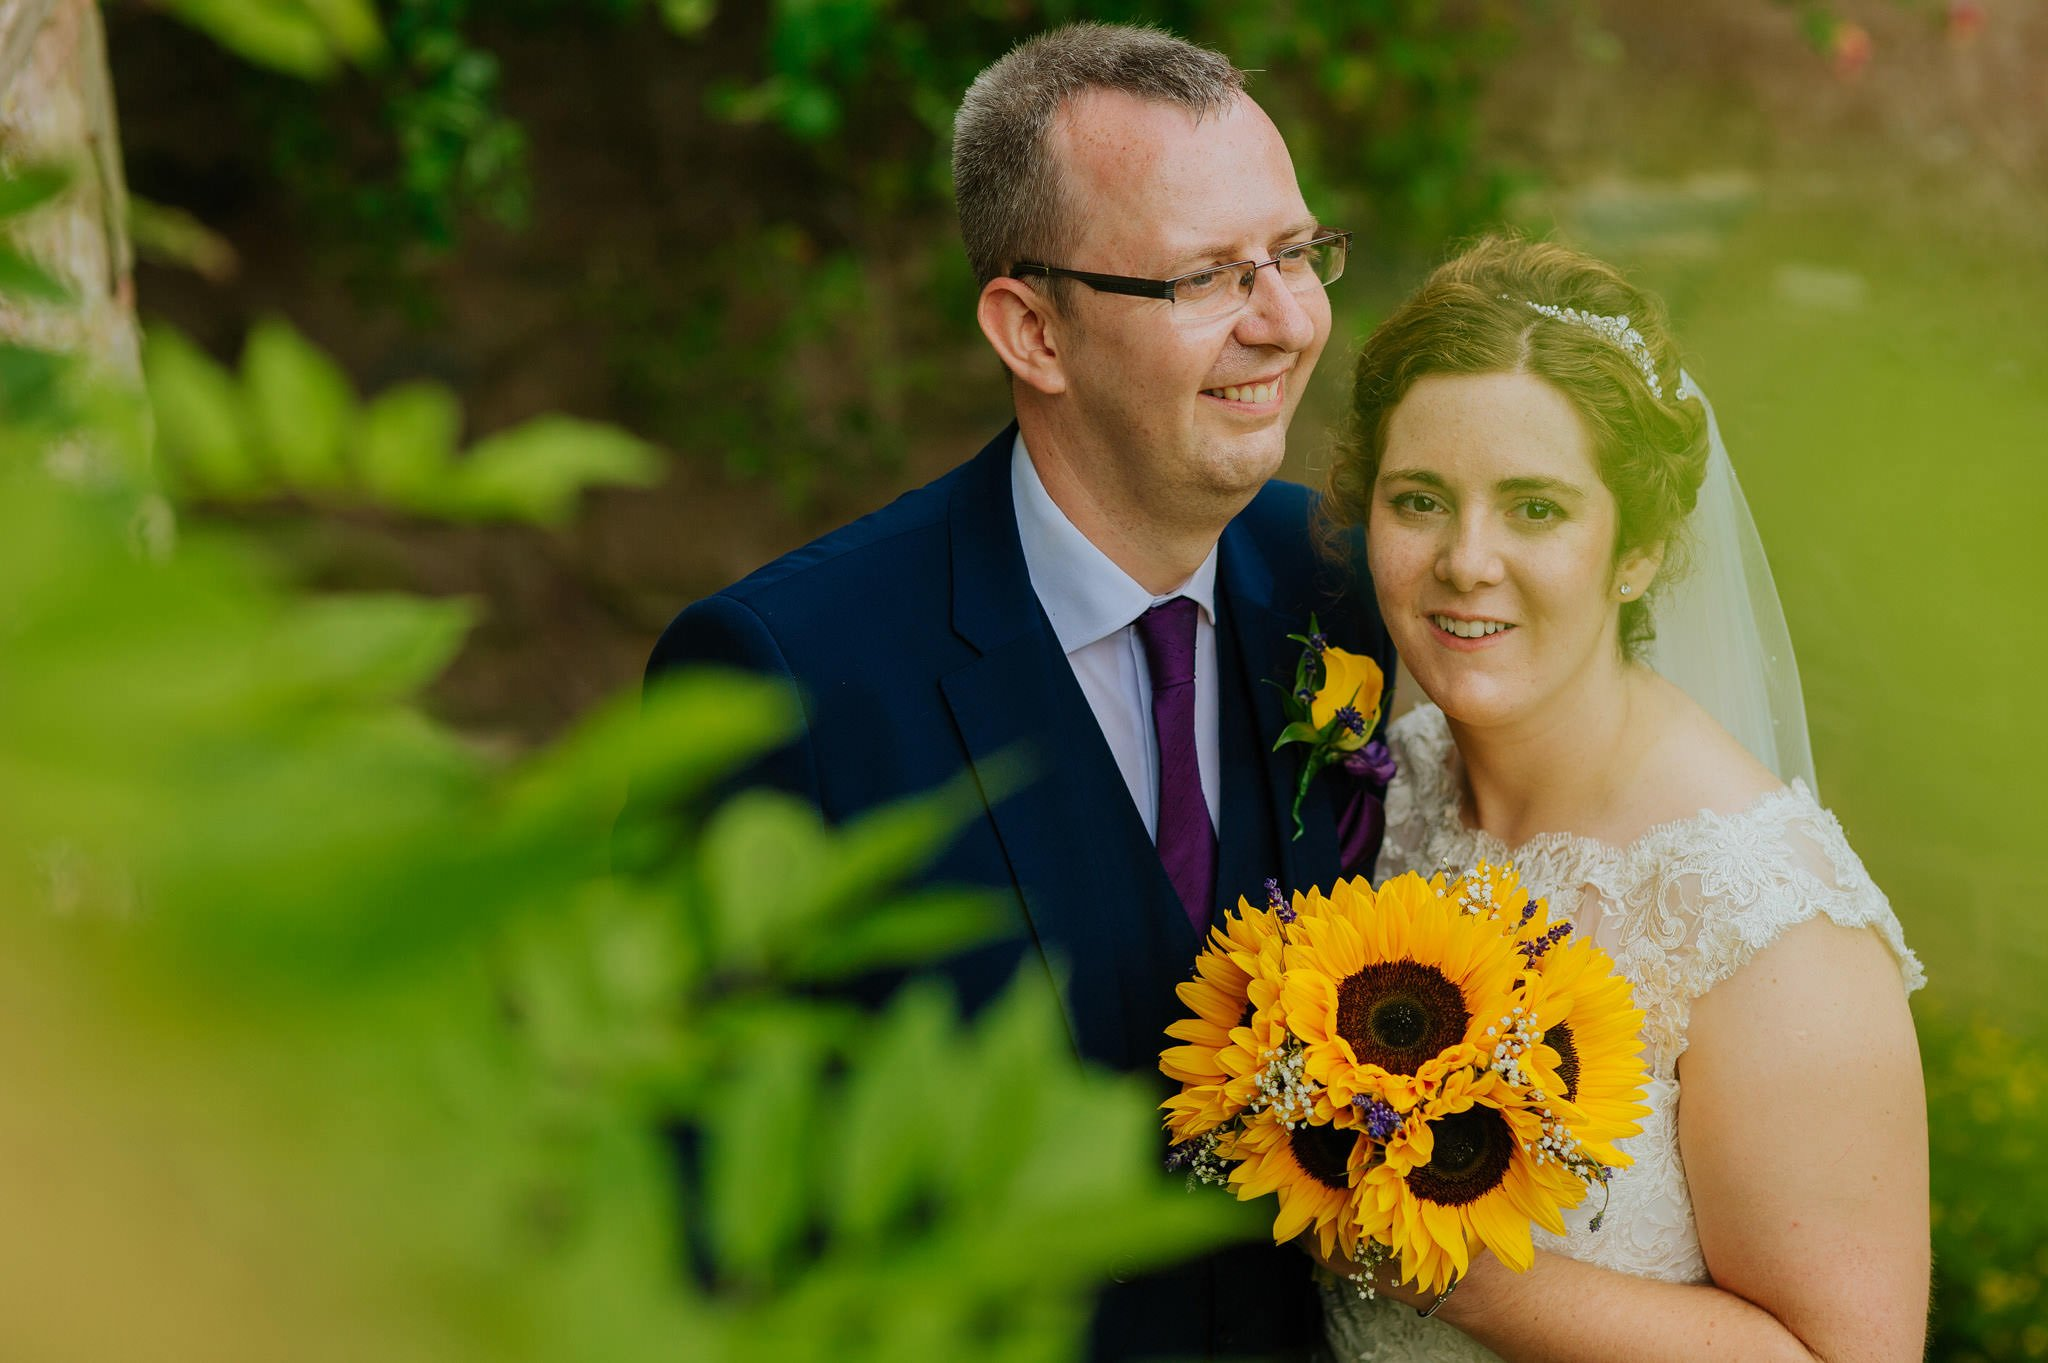 Wedding photography at Homme House in Herefordshire, West Midlands 72